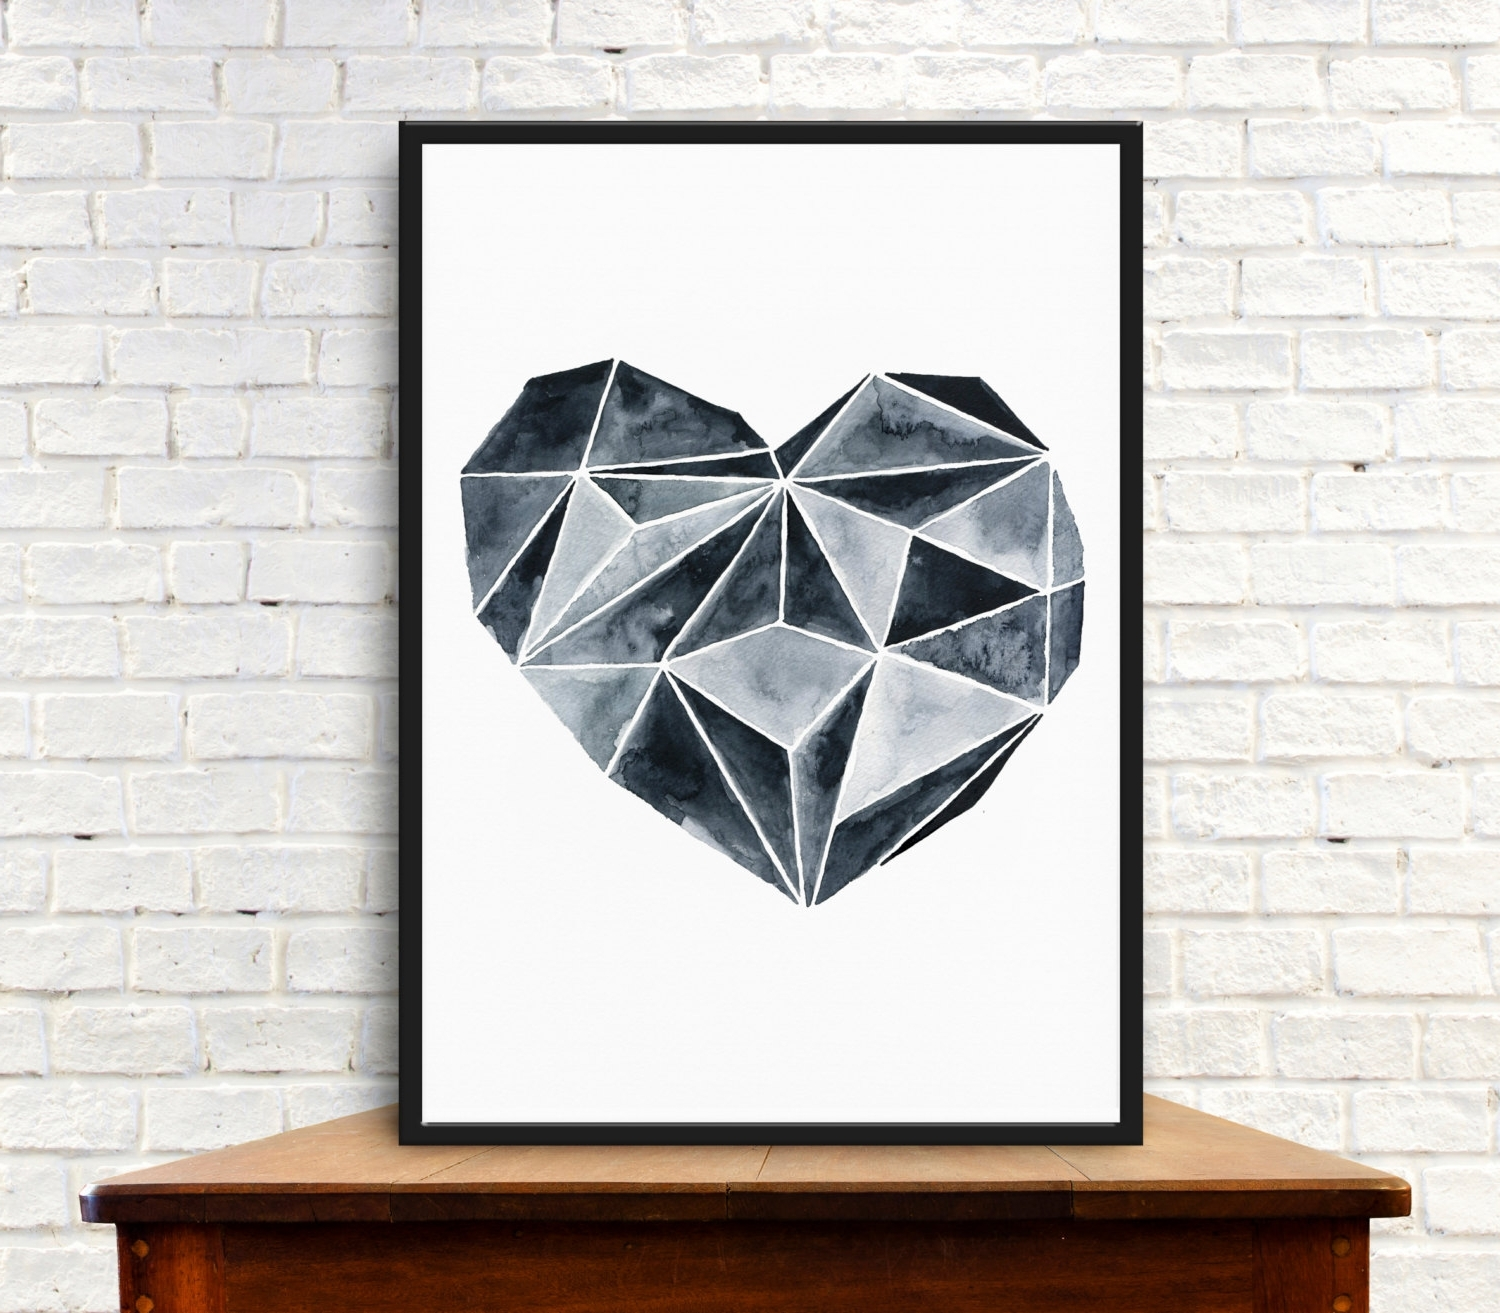 Abstract Heart Wall Art Within Most Up To Date Wall Art Print, Digital, Instant Download, Original Watercolor (View 7 of 15)